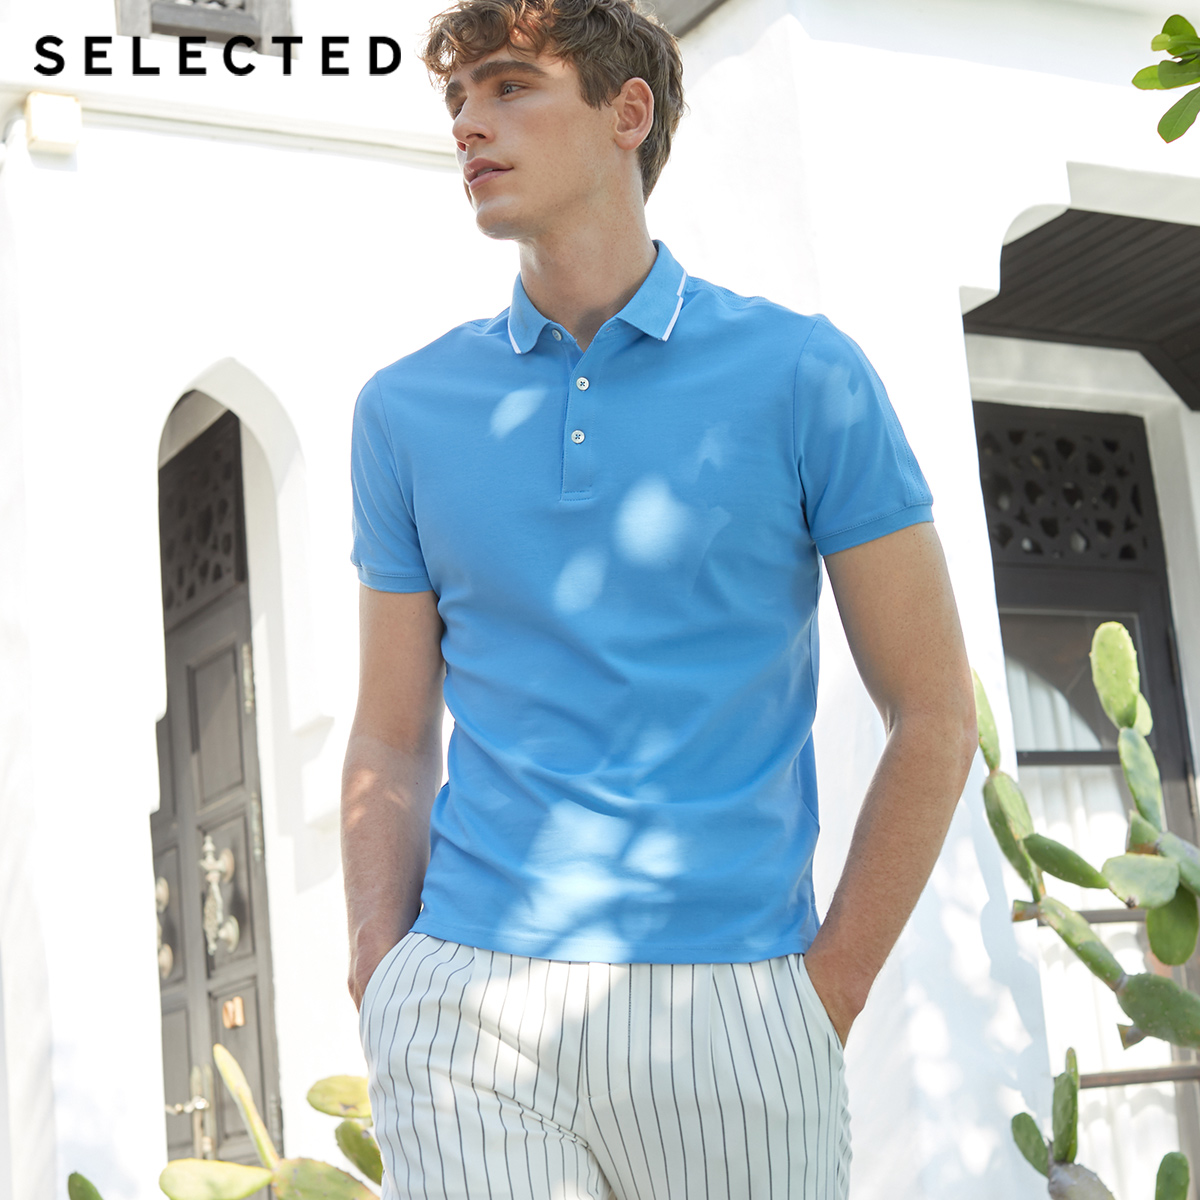 SELECTED Men's Summer Assorted Colors Turn-down Collar Short-sleeved Poloshirt S|419206551